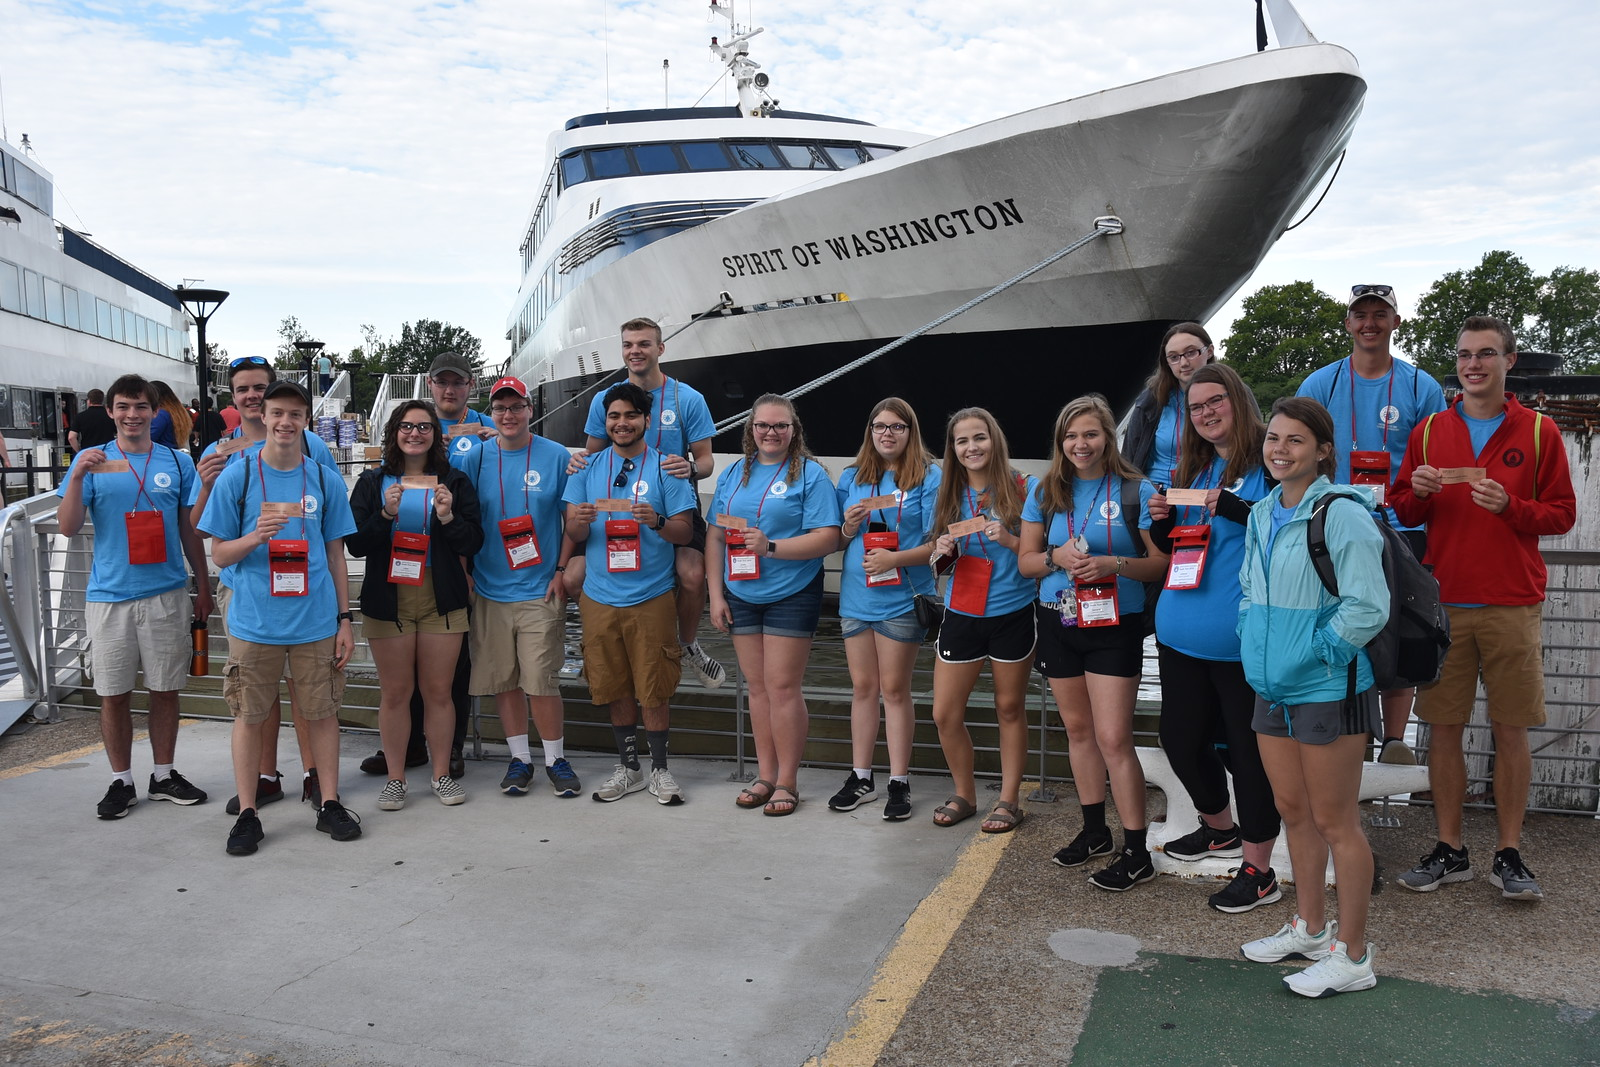 Youth tour on a Potomac River cruise